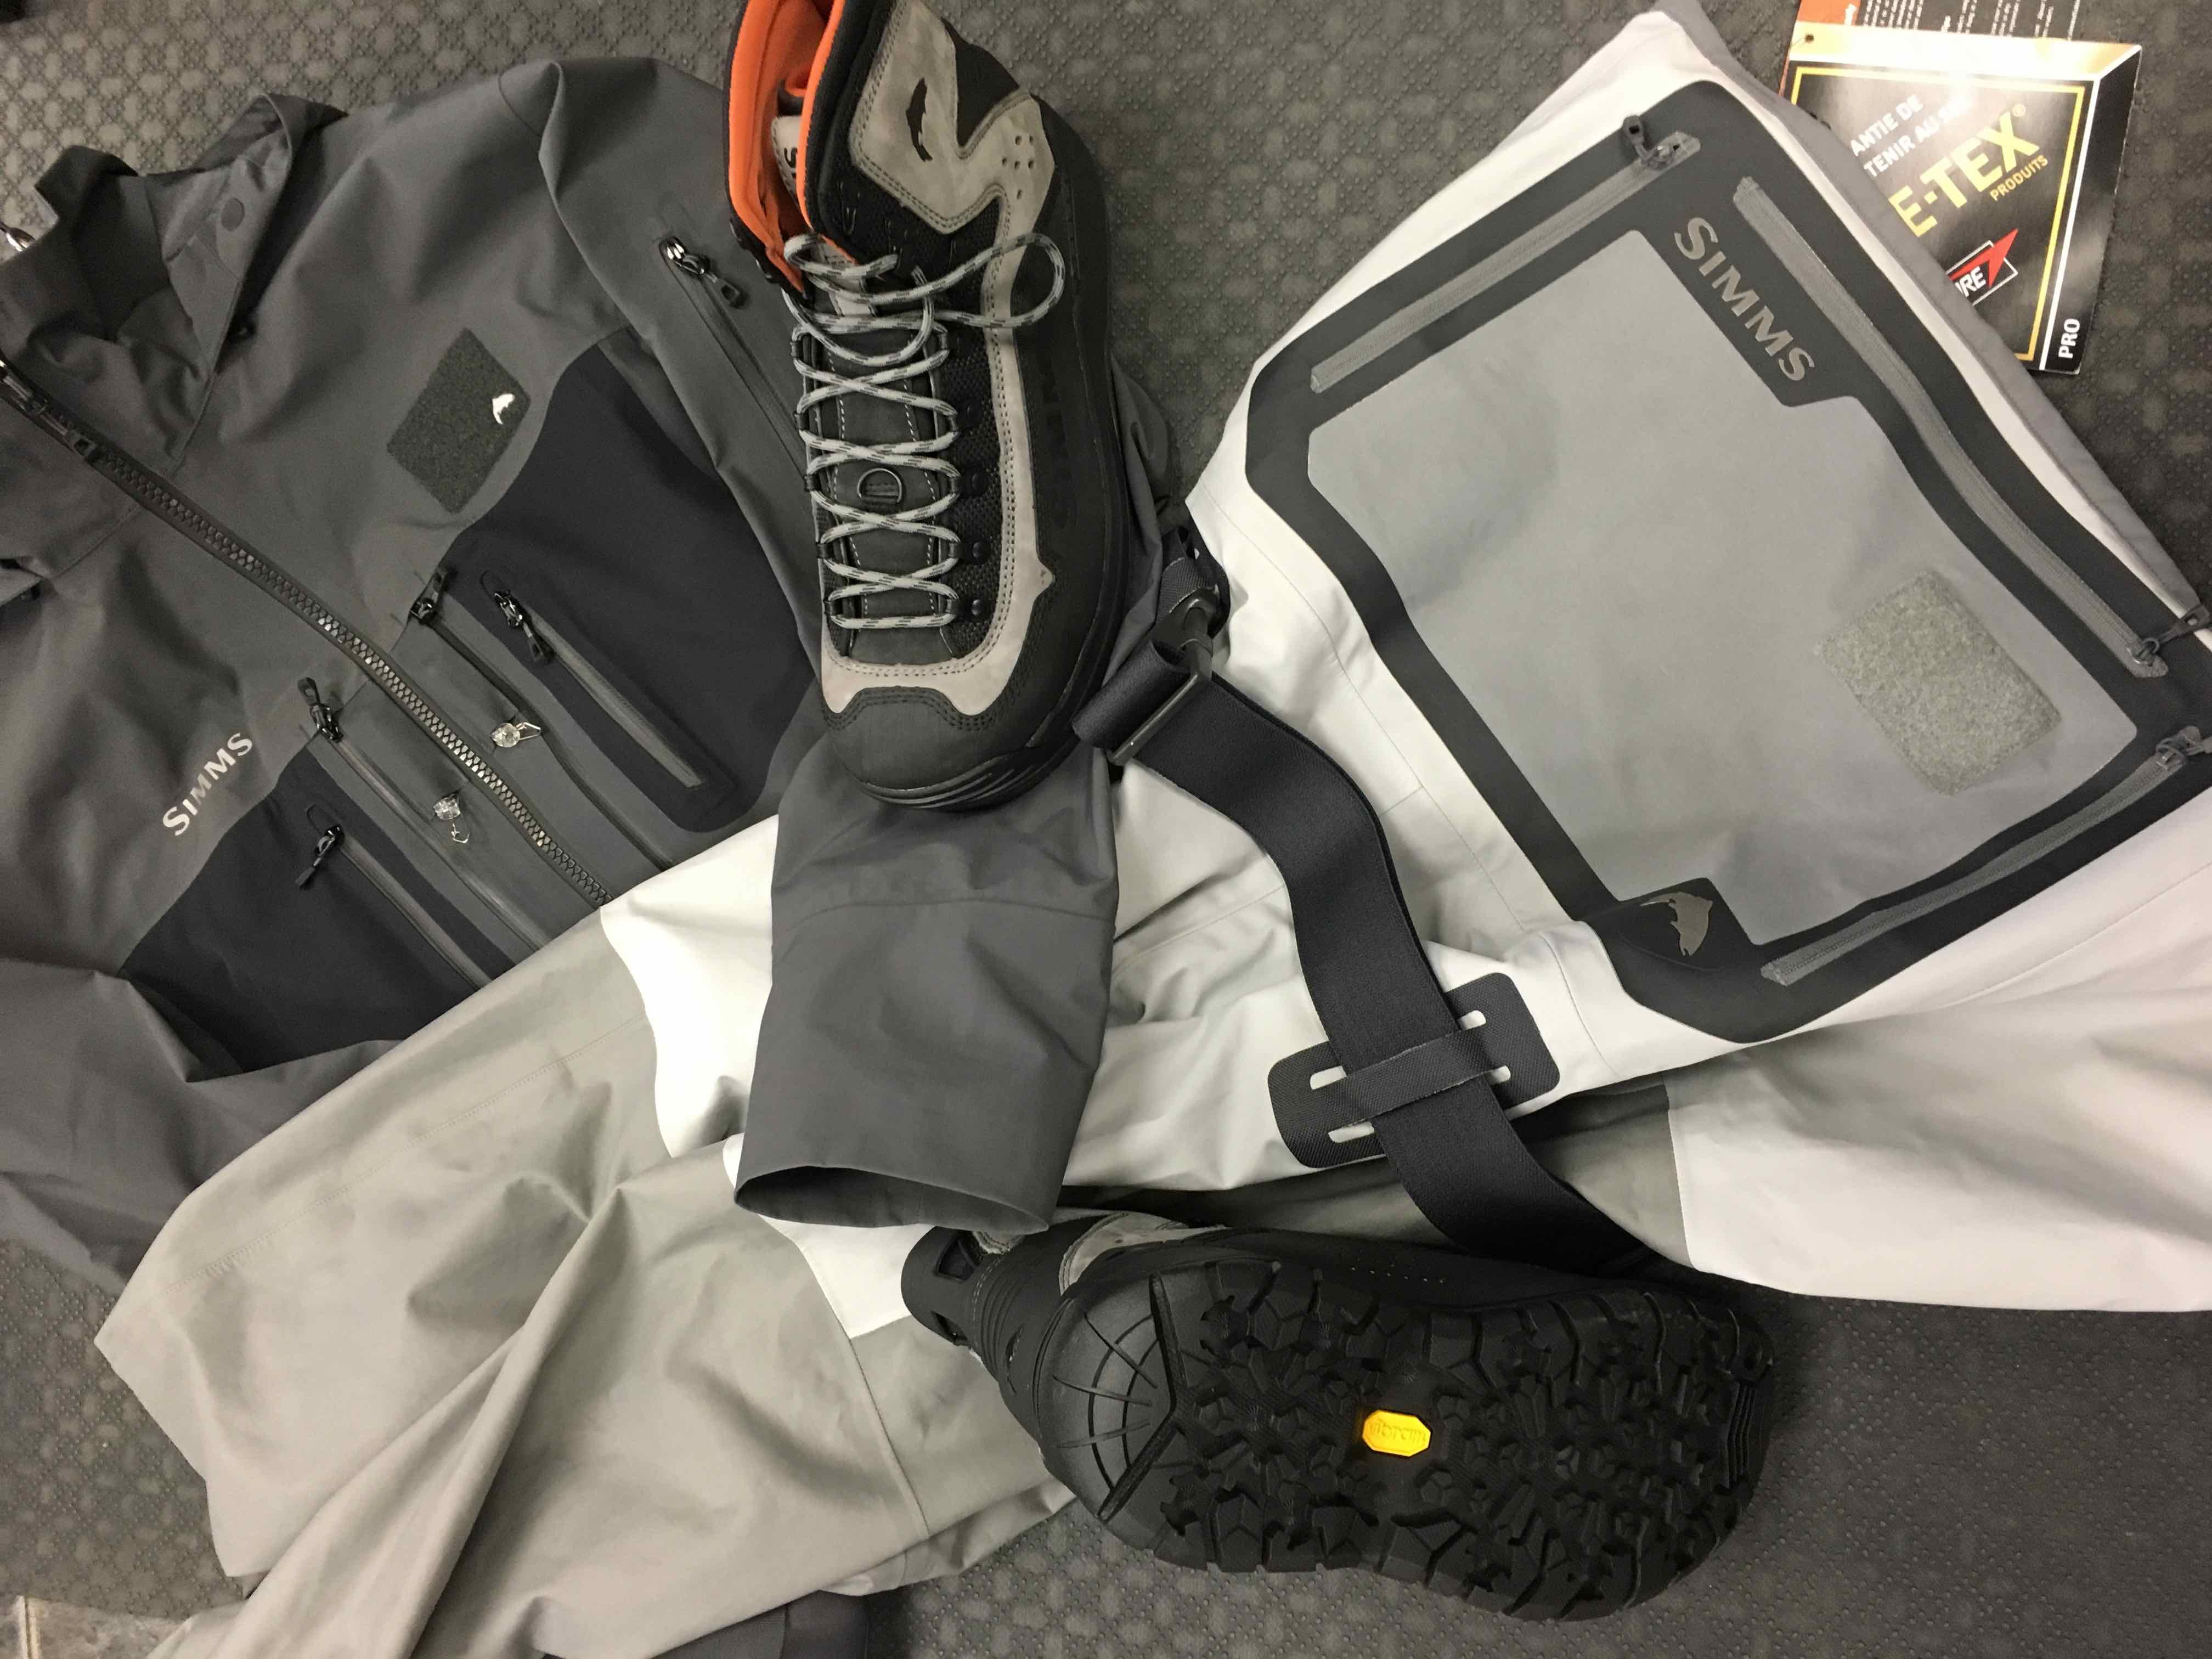 Simms 2018 G3 Series: Simms G3 Waders, Simms G3 Jacket& Simms G3 Wading Boots! Scheduled Release ofNovember 15th, 2017.